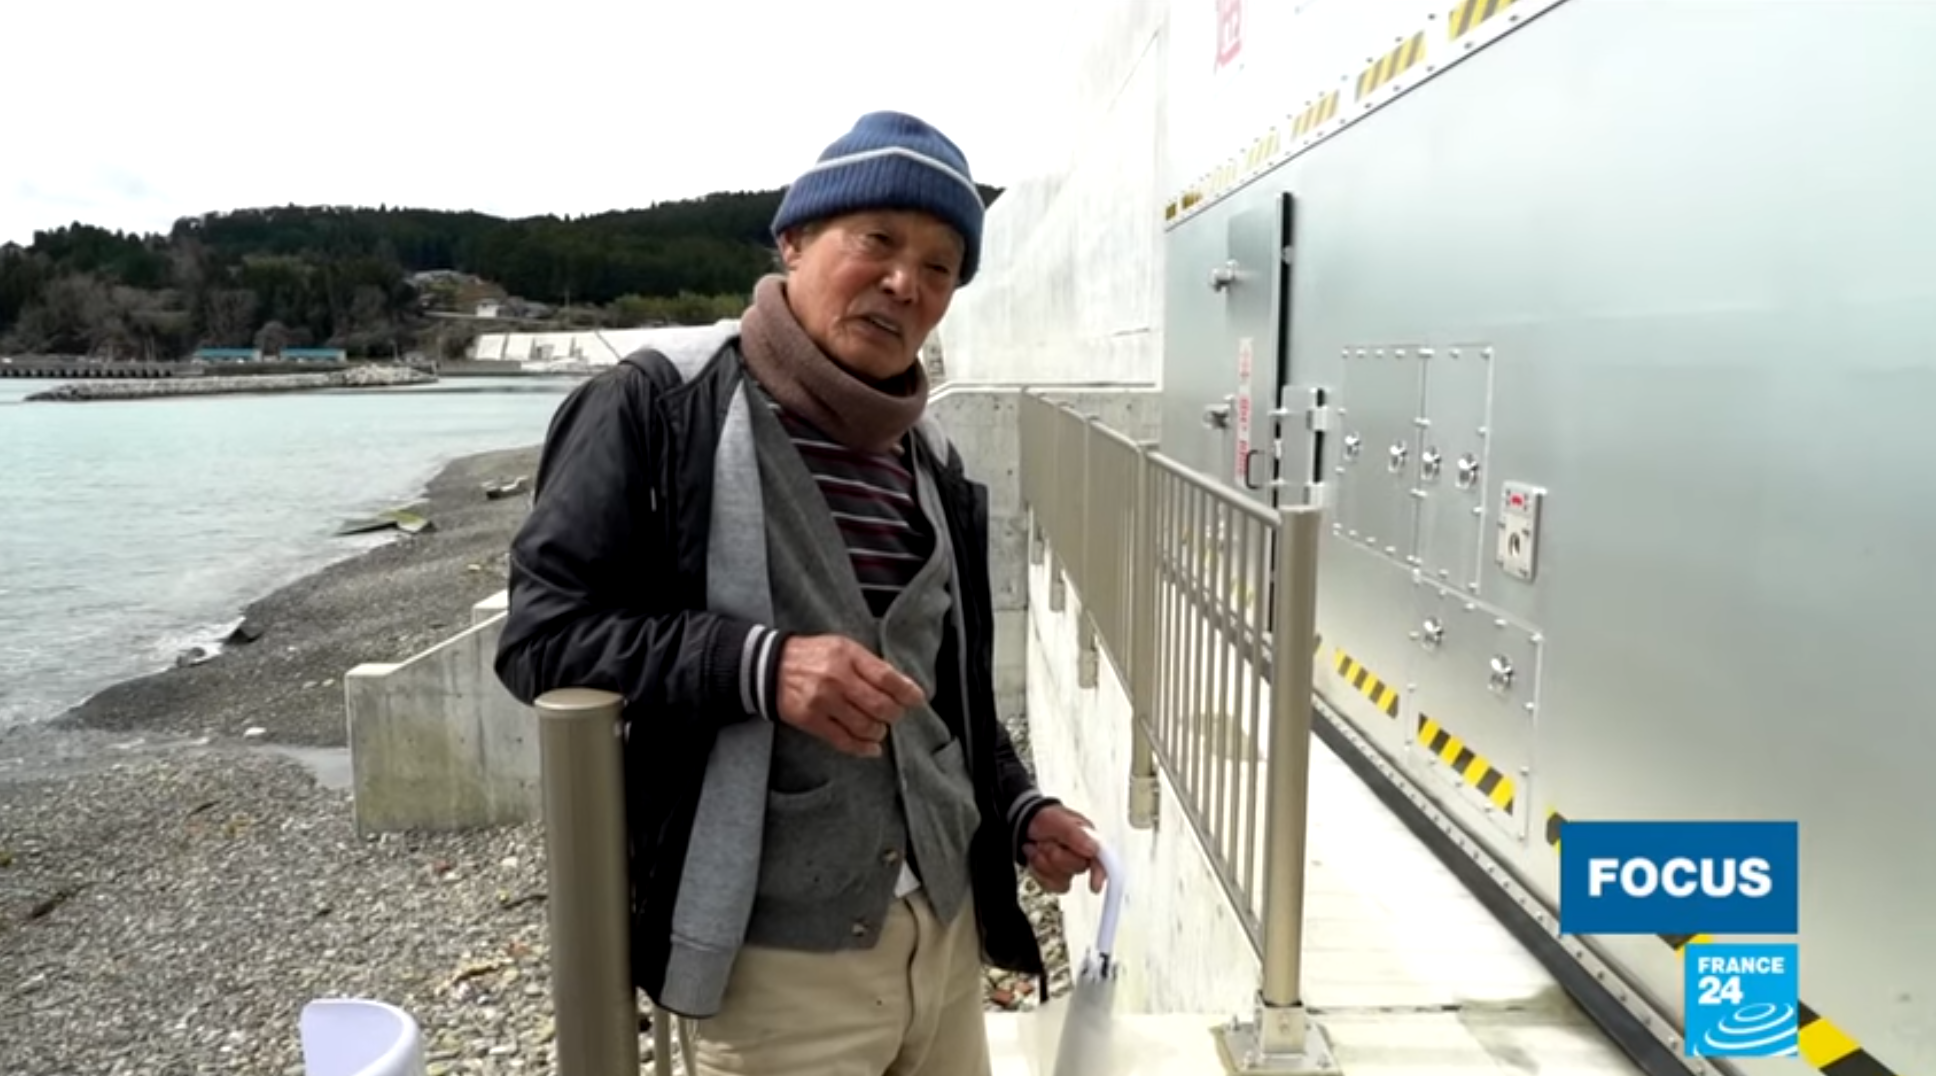 A local resident explains how the 'great wall' of Japan works.